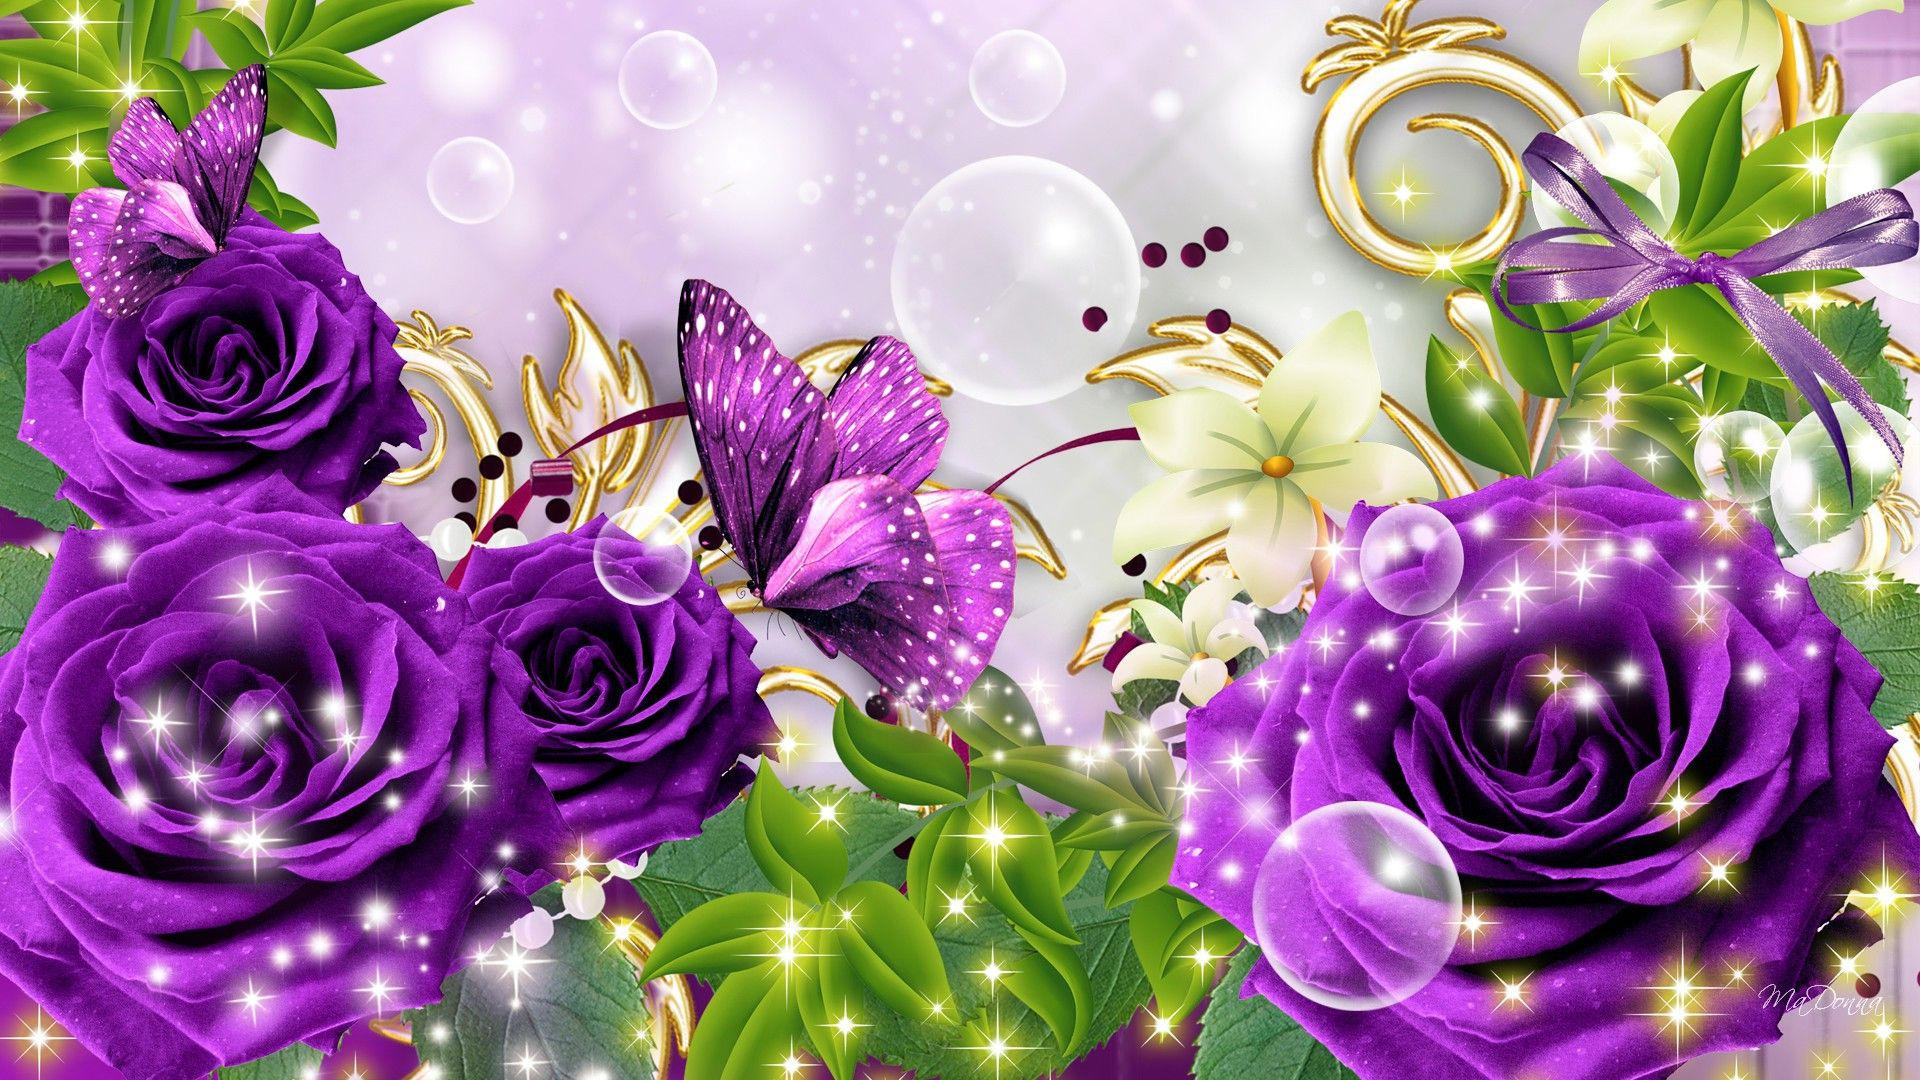 Purple roses and butterfly, picture on March 8 | Purple ...